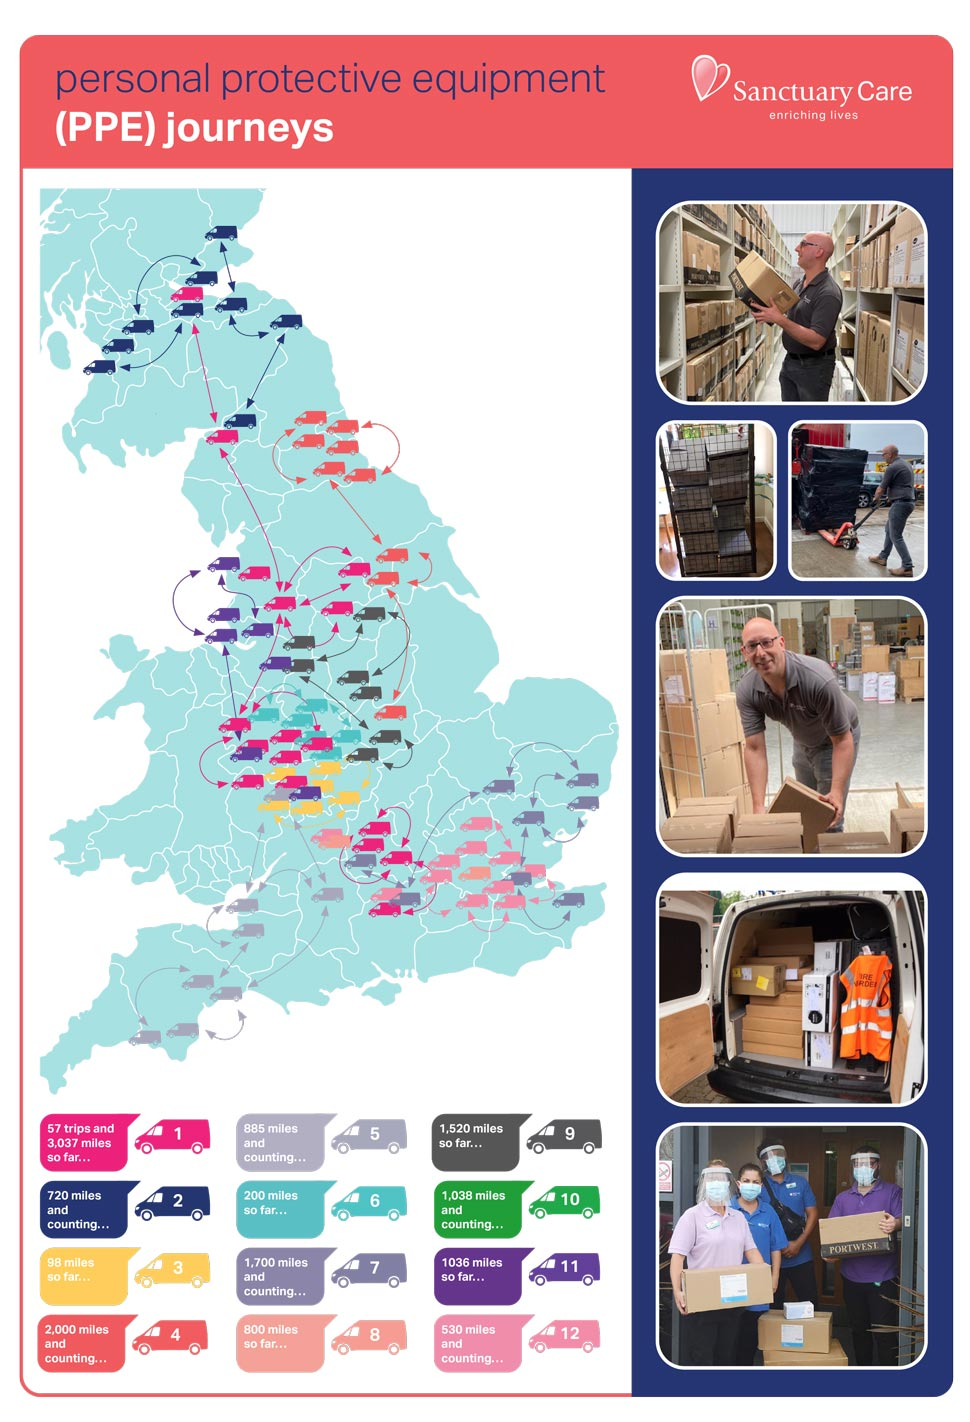 A map showing the journey of our personal protective equipment (PPE).